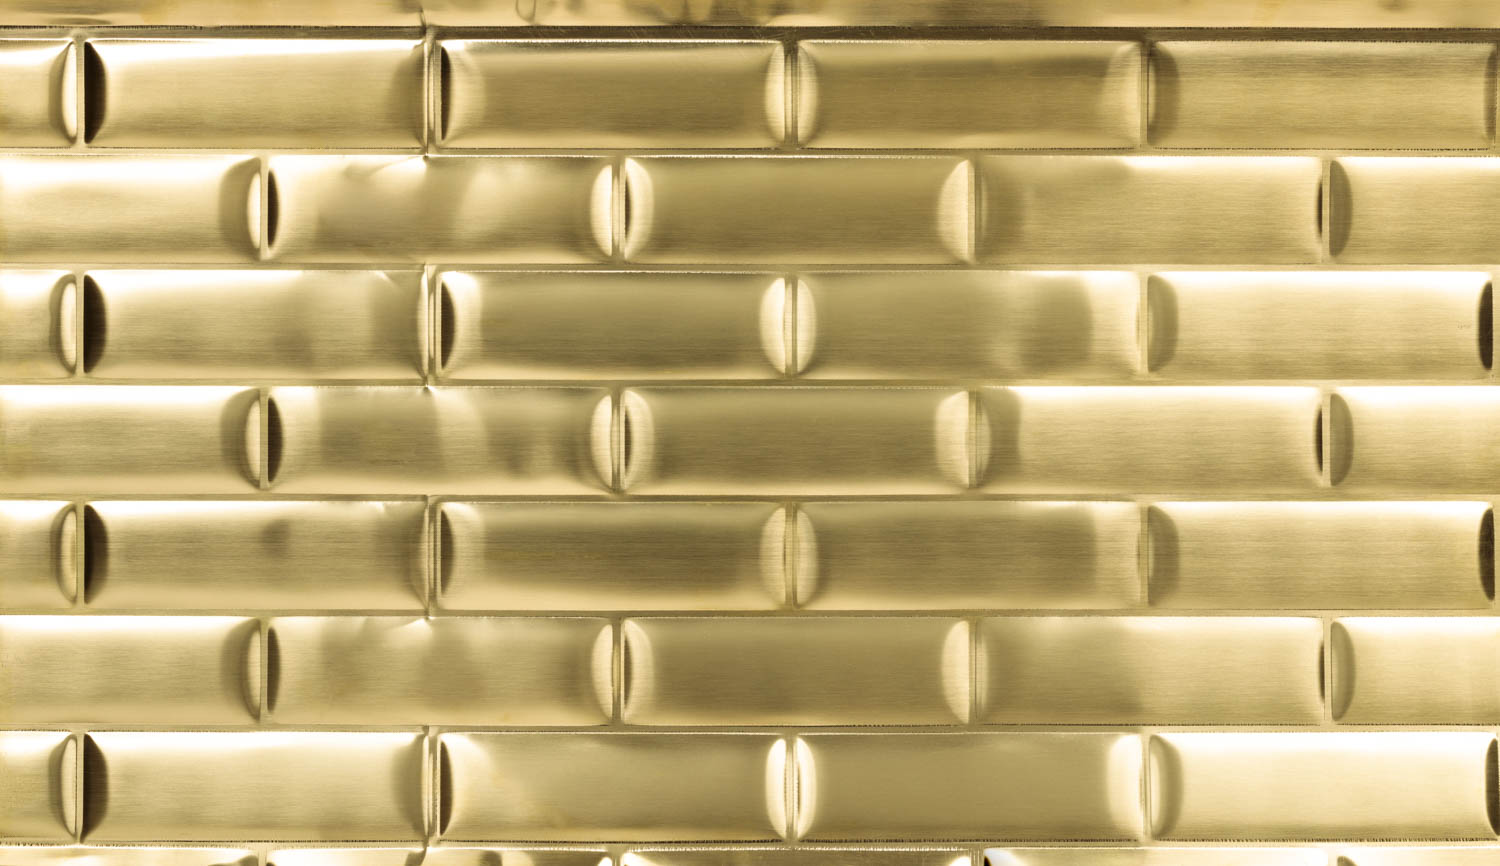 Gold colored aluminum subway tiles